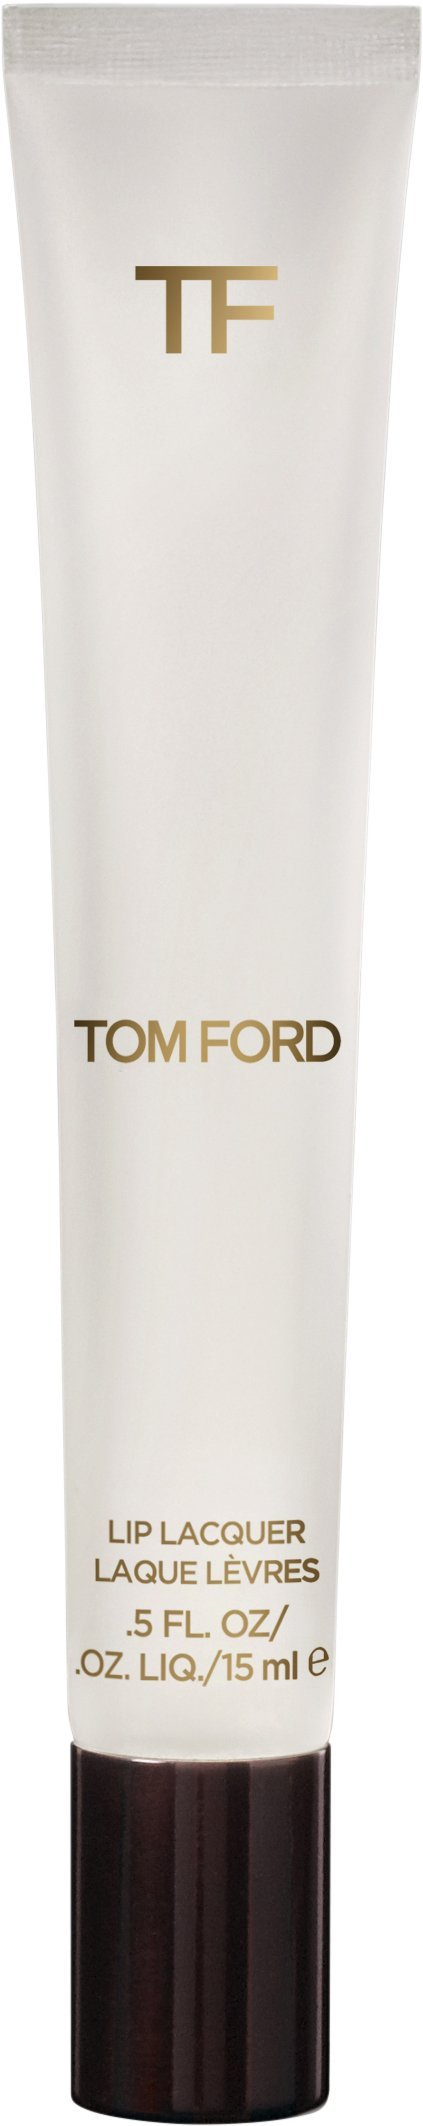 Tom Ford Lip Lacquer Vinyl - Koch Parfymeri